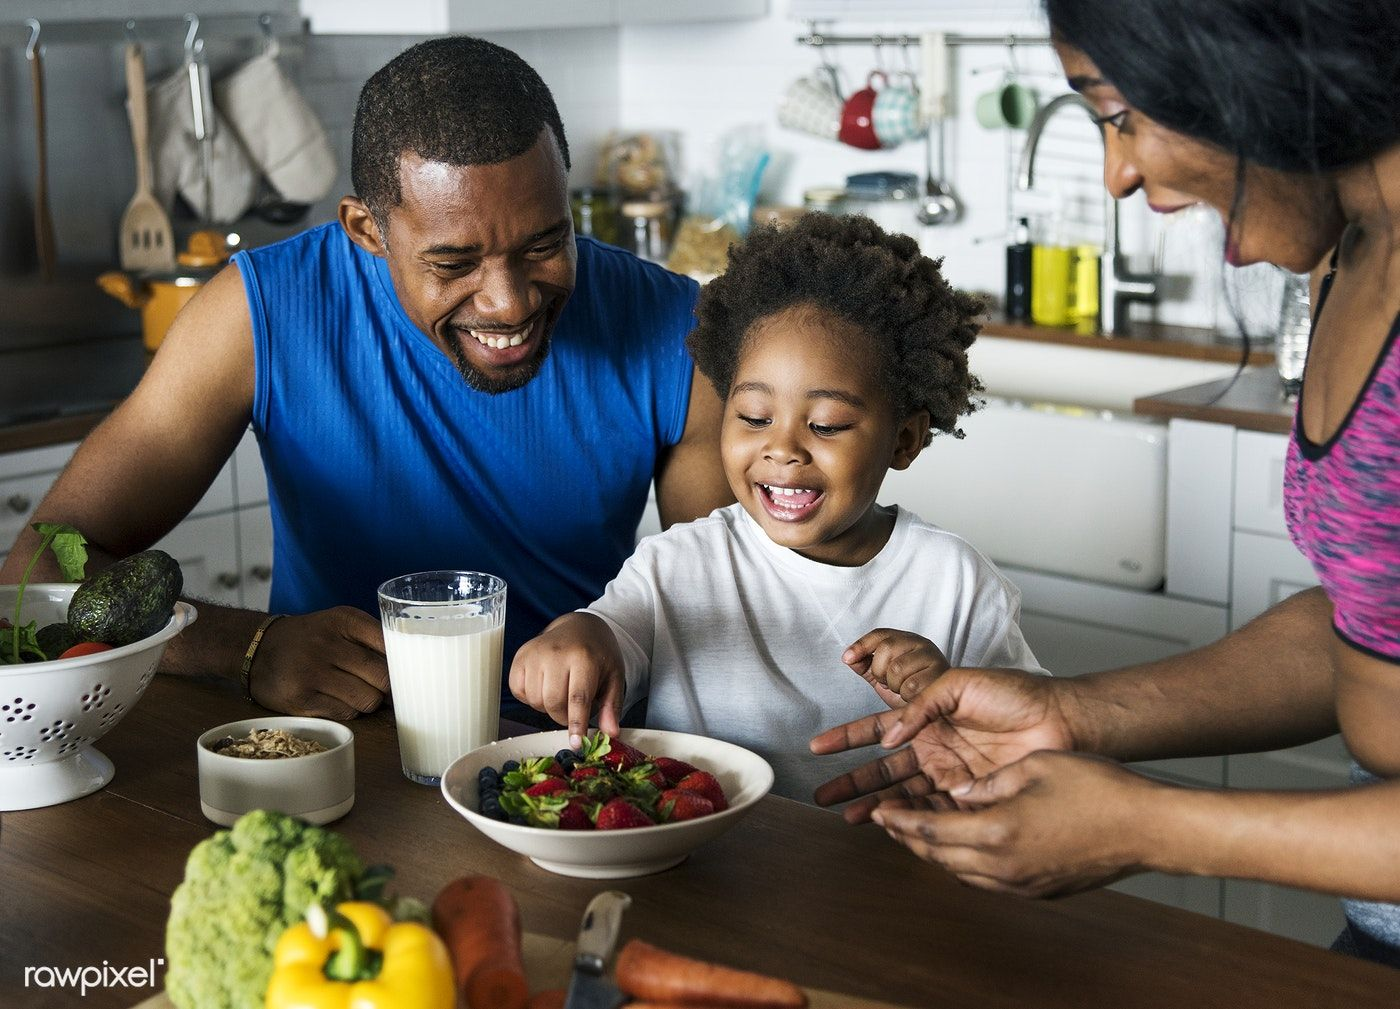 Eat and Drink Smart to Fend Off Cold and Flu Season